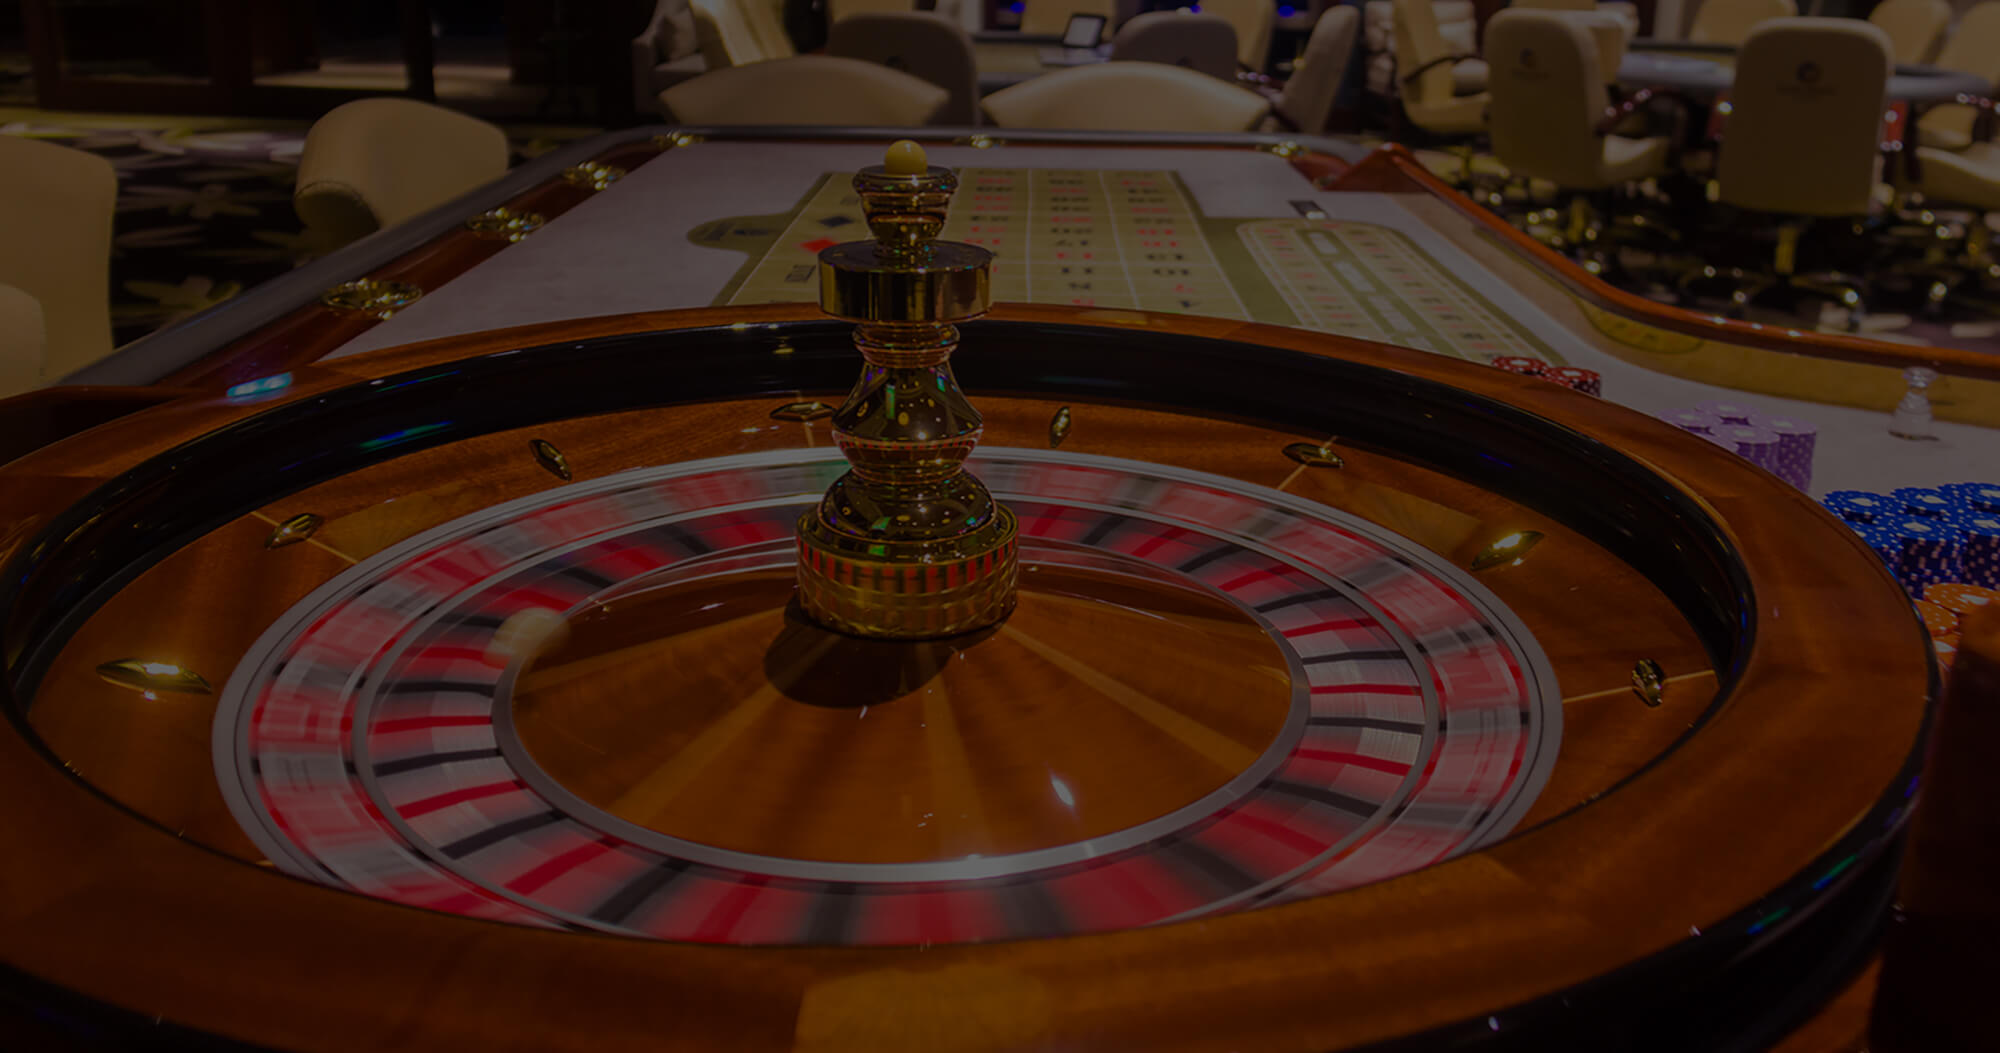 Guide on how to register online roulette for beginners